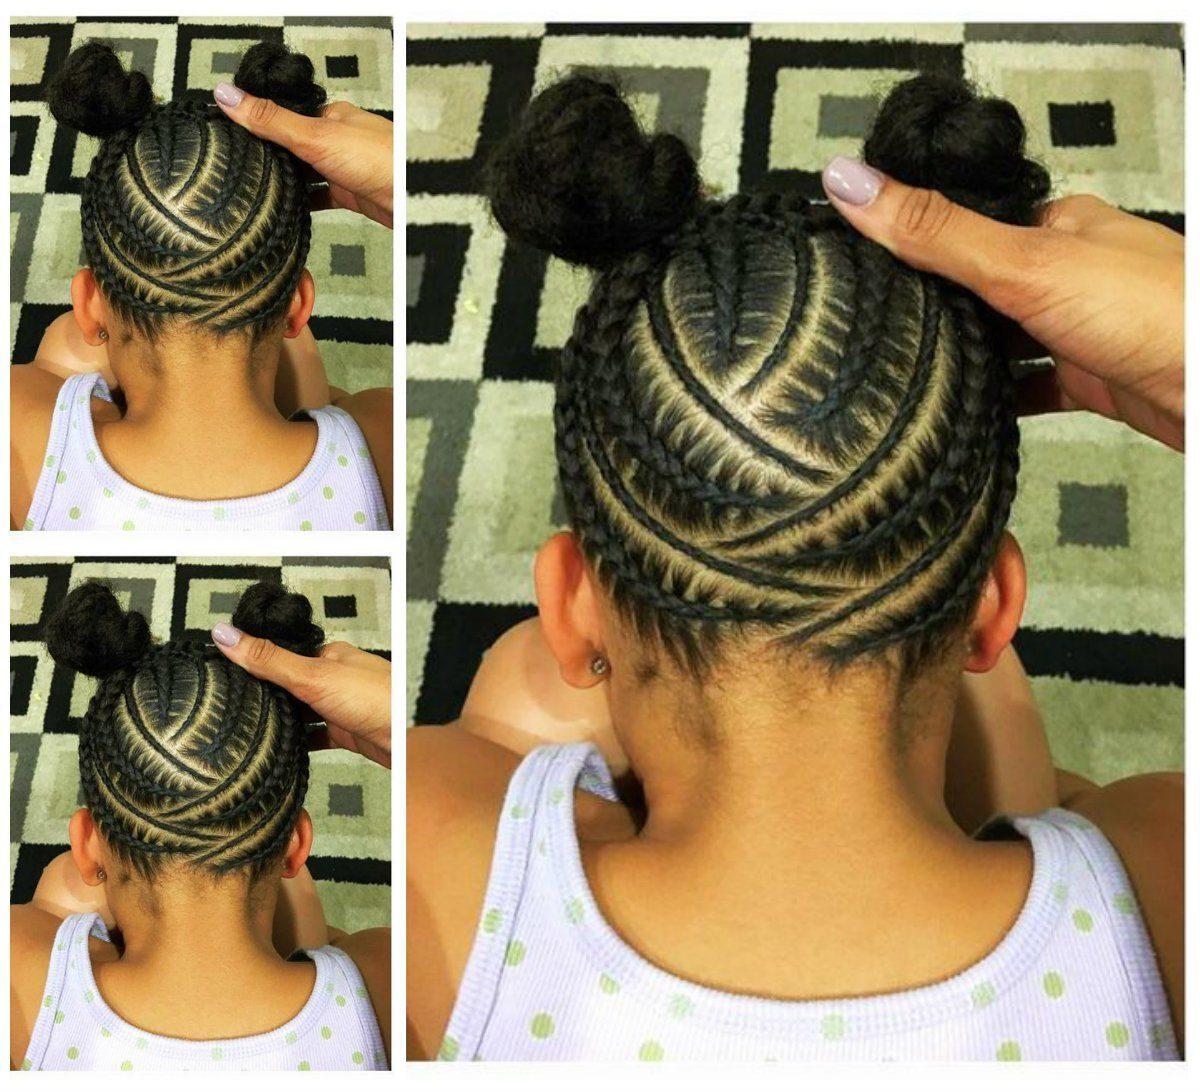 29 Braided Cornrows With Buns For Little Black Girls Afrocosmopolitan Hair Styles Little Girls Ponytail Hairstyles Natural Hair Styles For Black Women